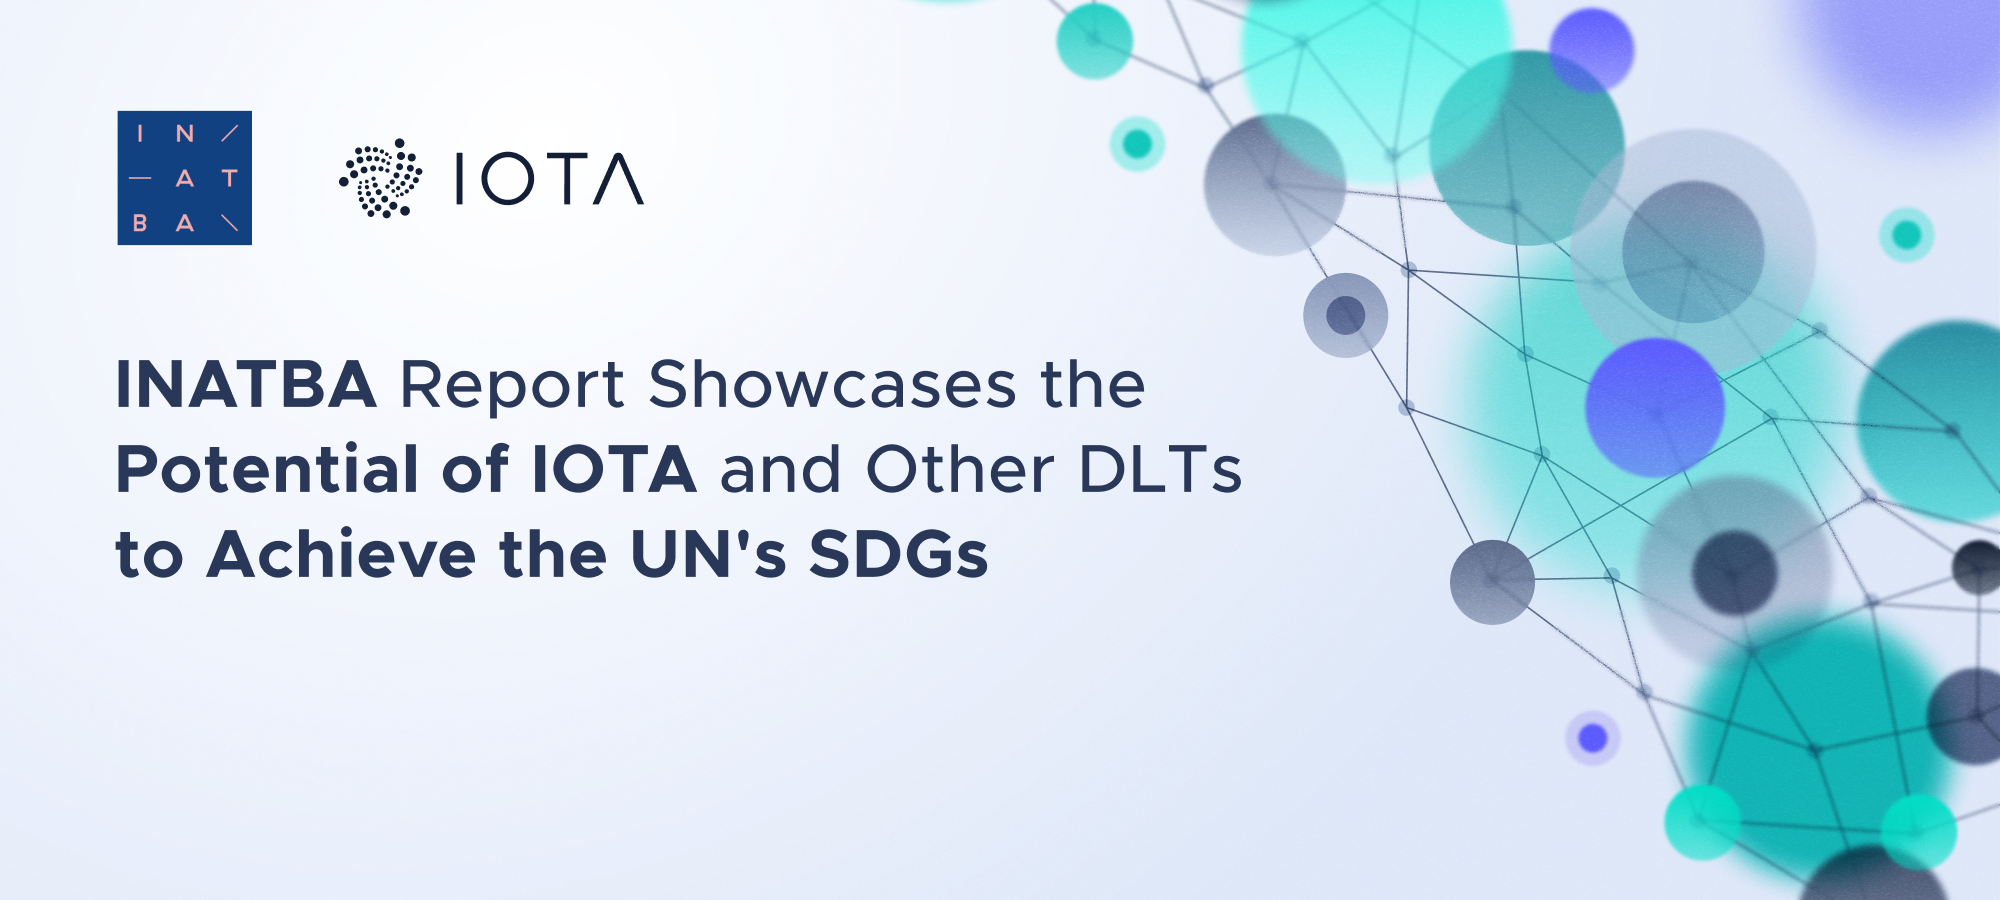 INATBA Report Showcases the Potential of IOTA and Other DLTs to Achieve the UN's SDGs